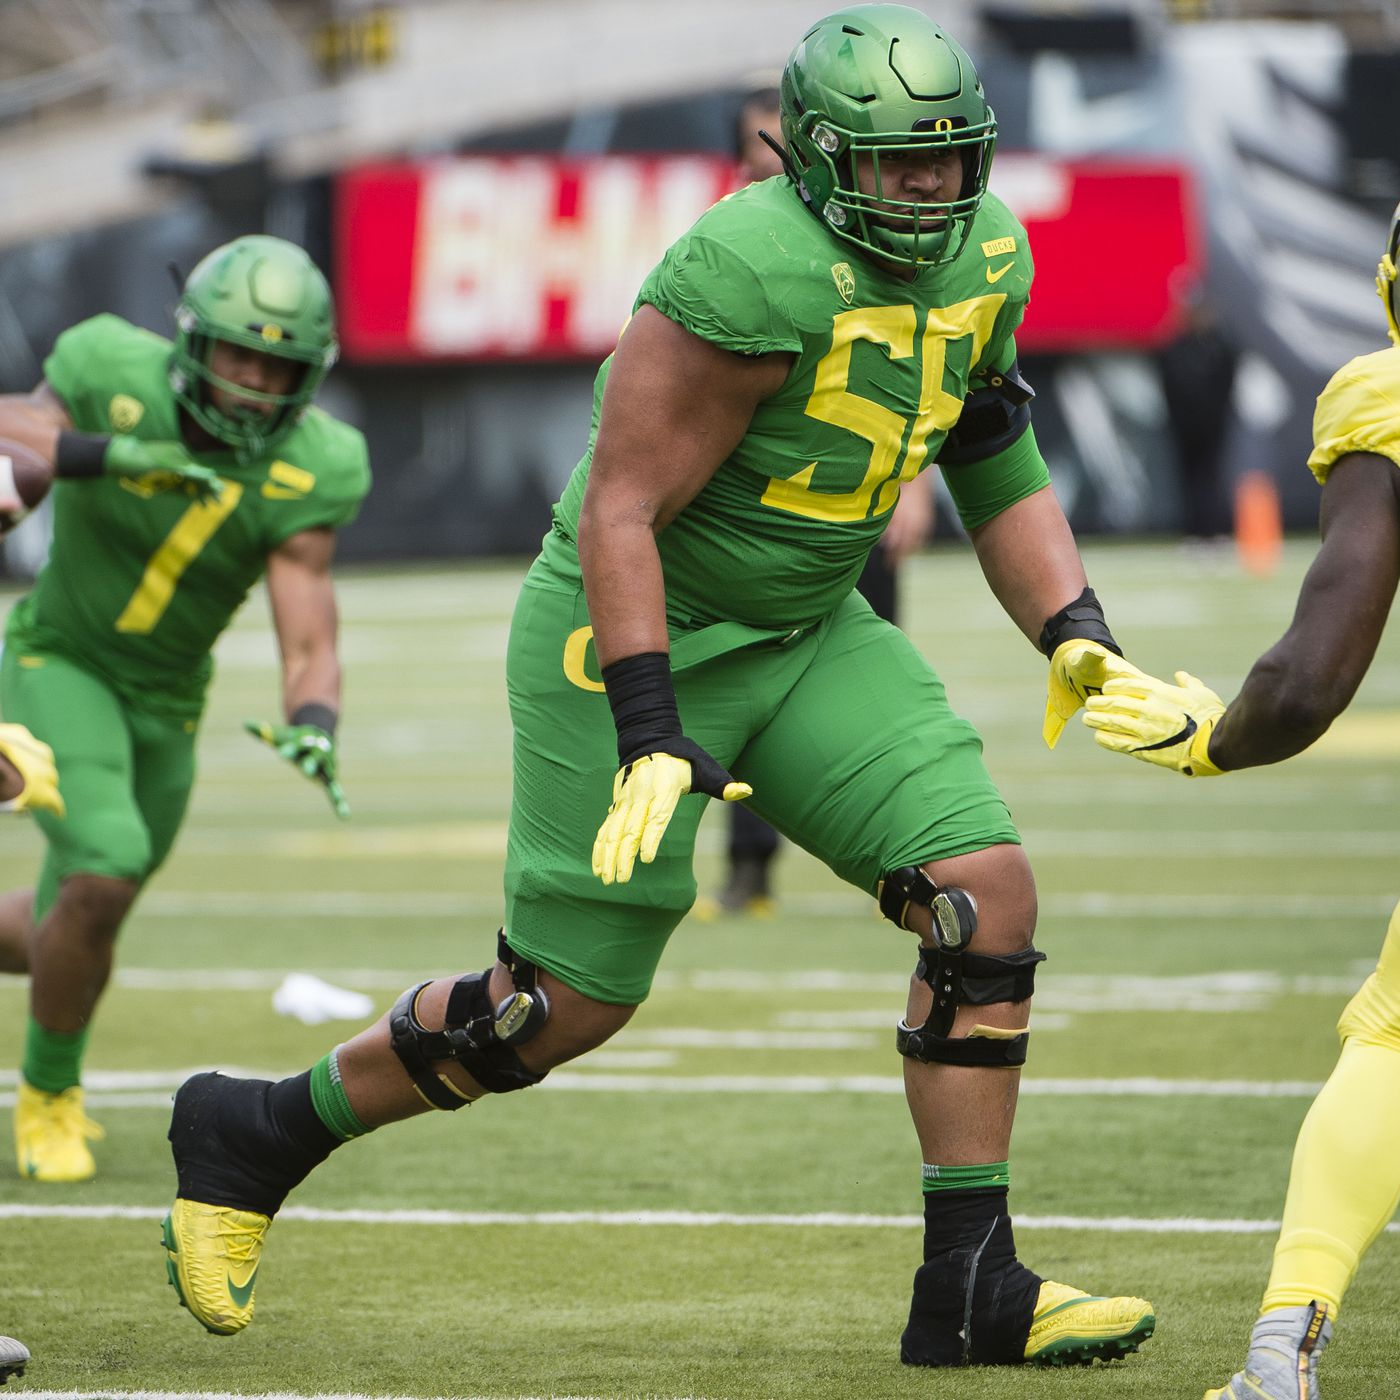 Best Offensive Lines 2020.2019 Pac 12 Offensive Line Rankings Oregon Has The Pac 12 S